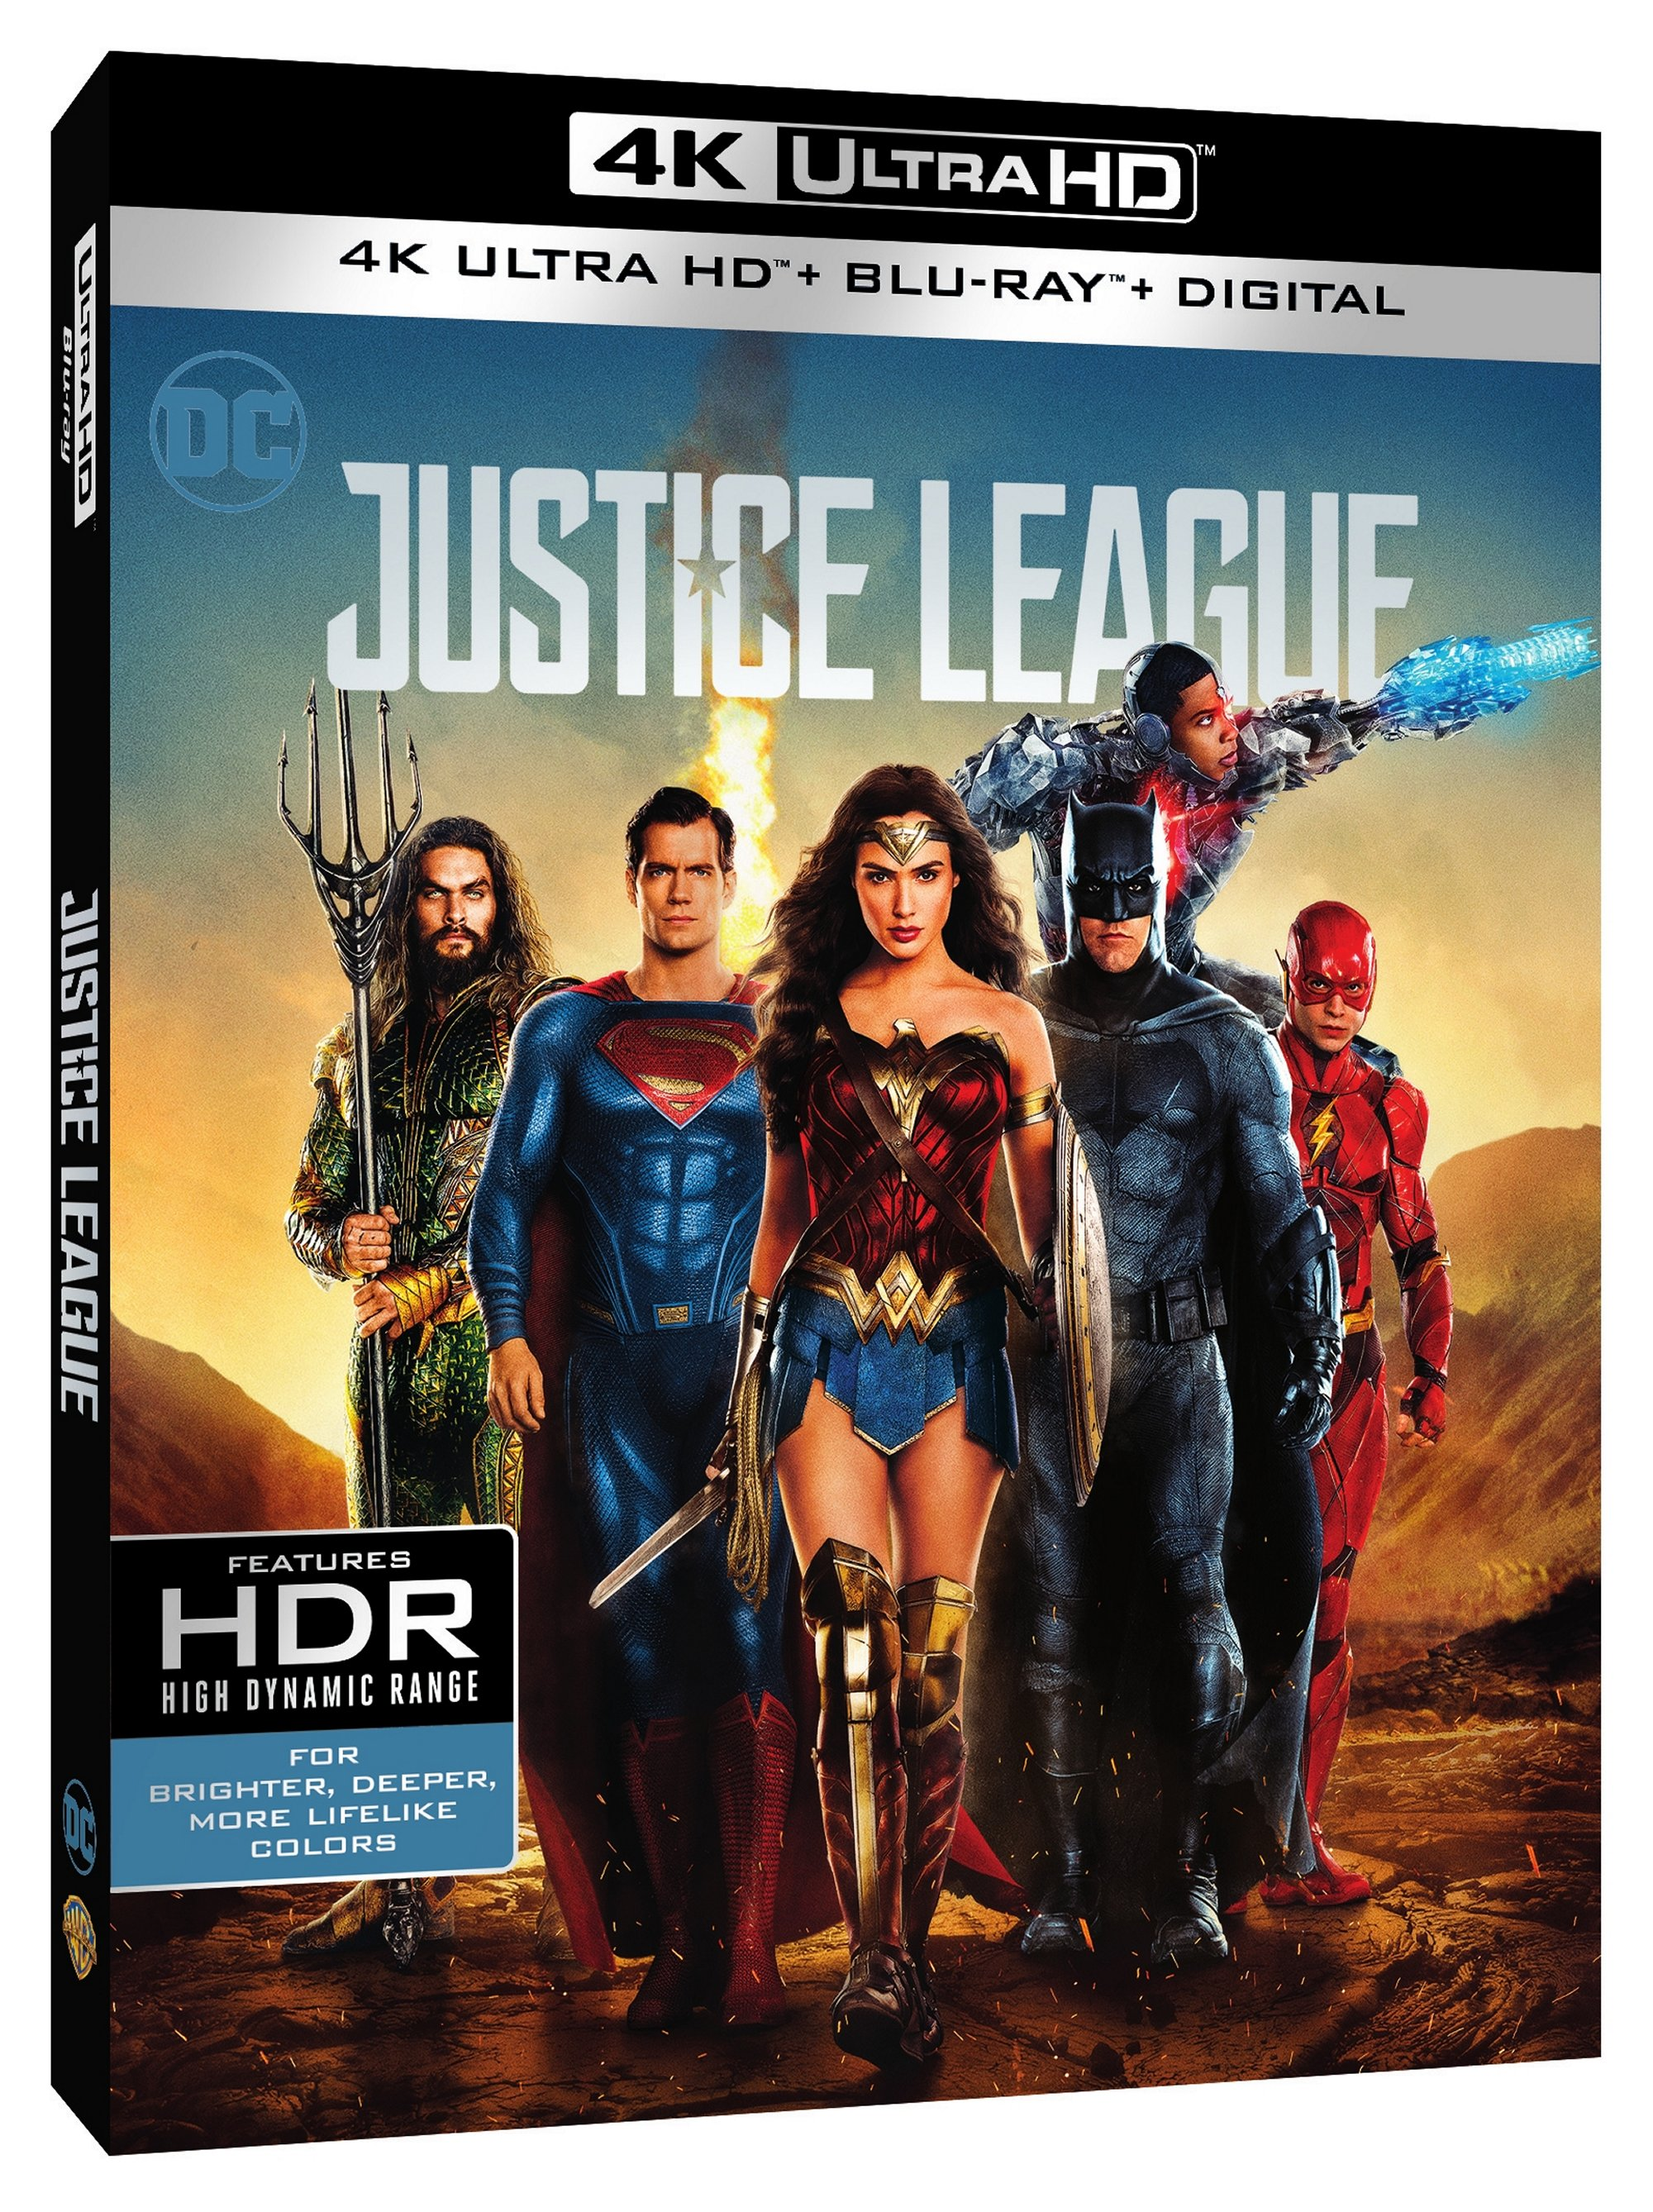 Justice League Digital & 4K, Blu-ray, DVD Release Dates Announced